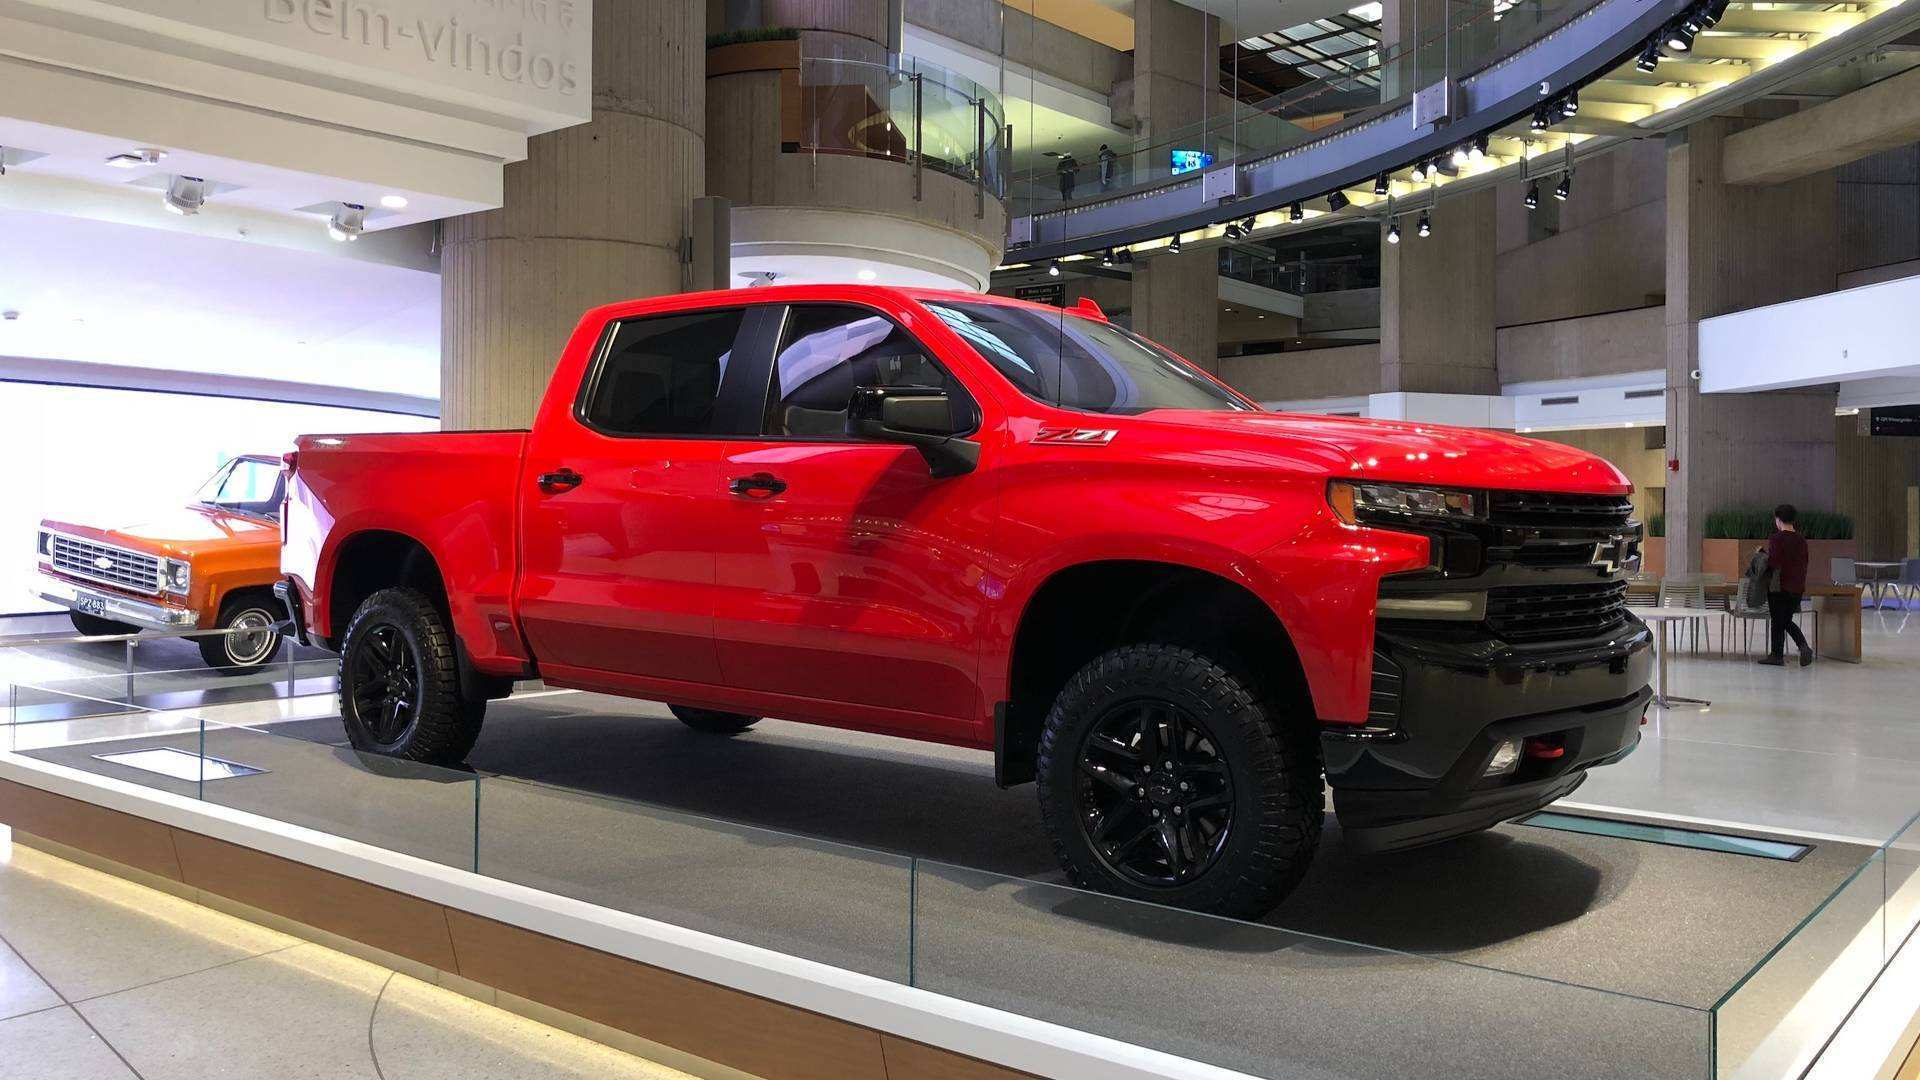 78 All New 2019 Chevrolet Diesel Prices